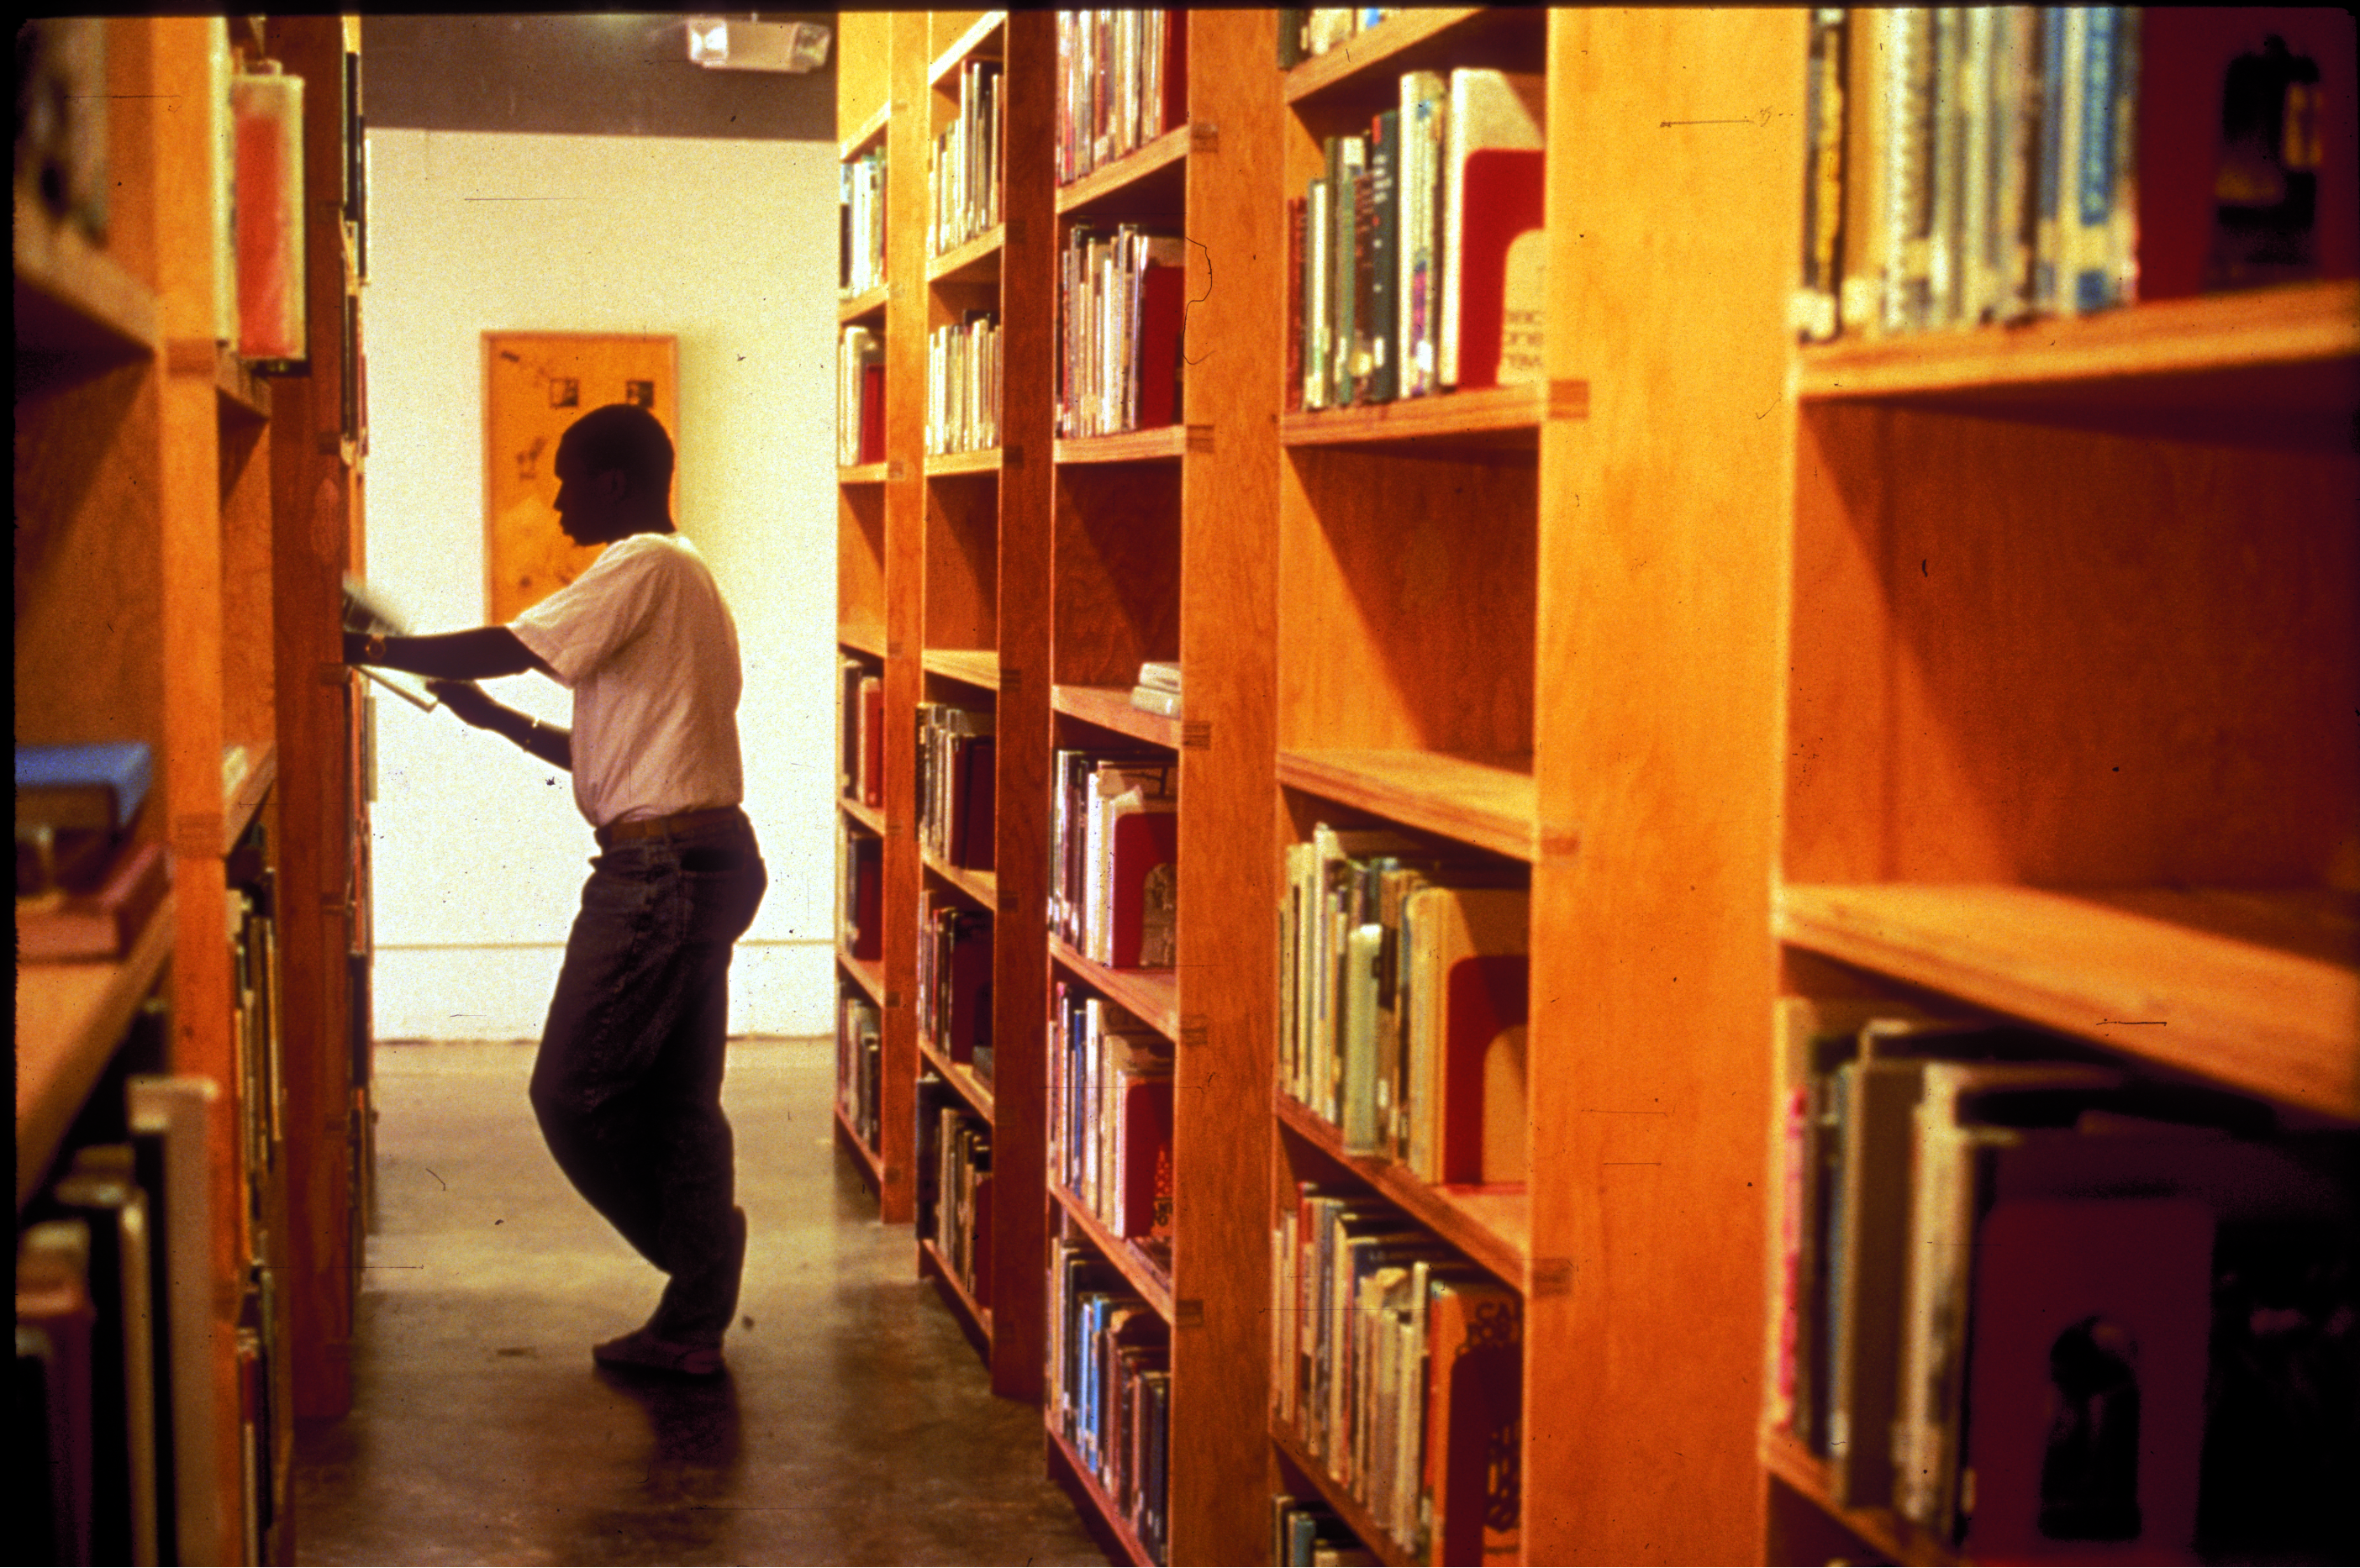 standing man reads book at bookshelf